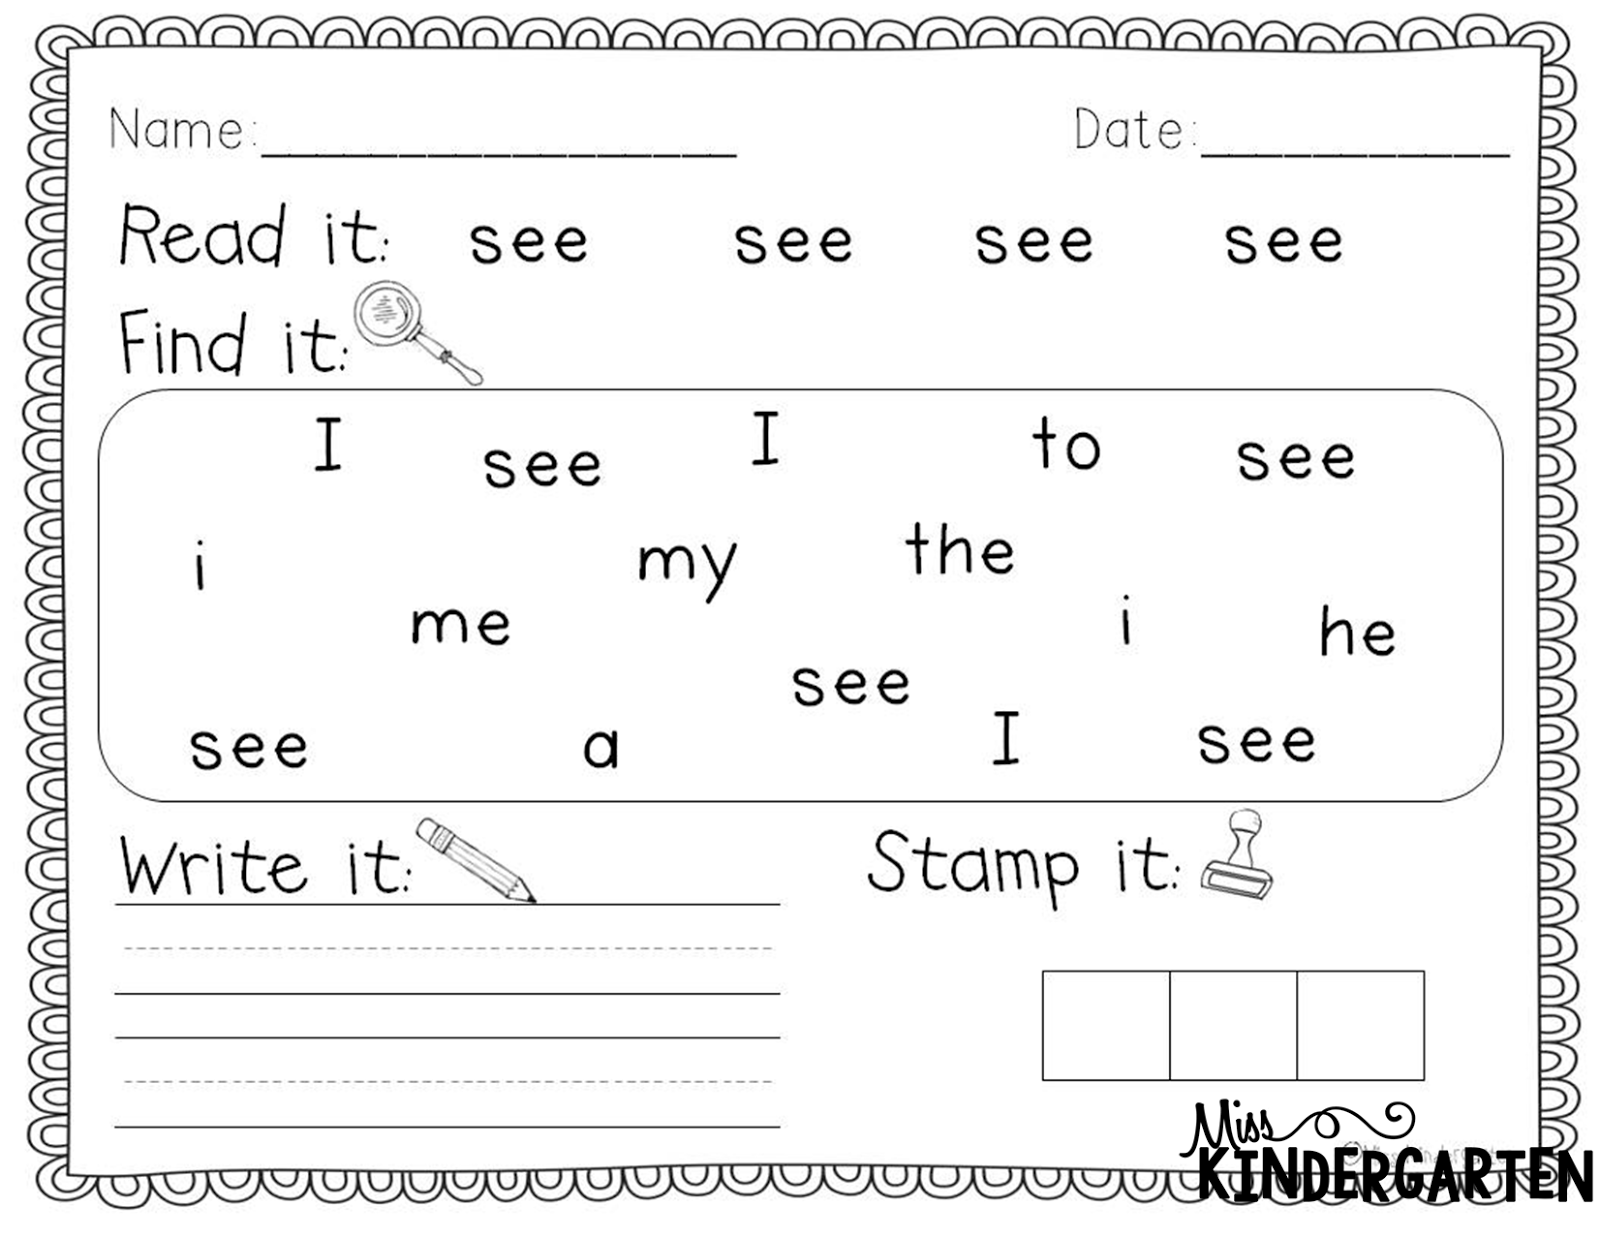 Worksheet Sight Word Printables Kindergarten sight word practice miss kindergarten httpwww teacherspayteachers comproductsight word